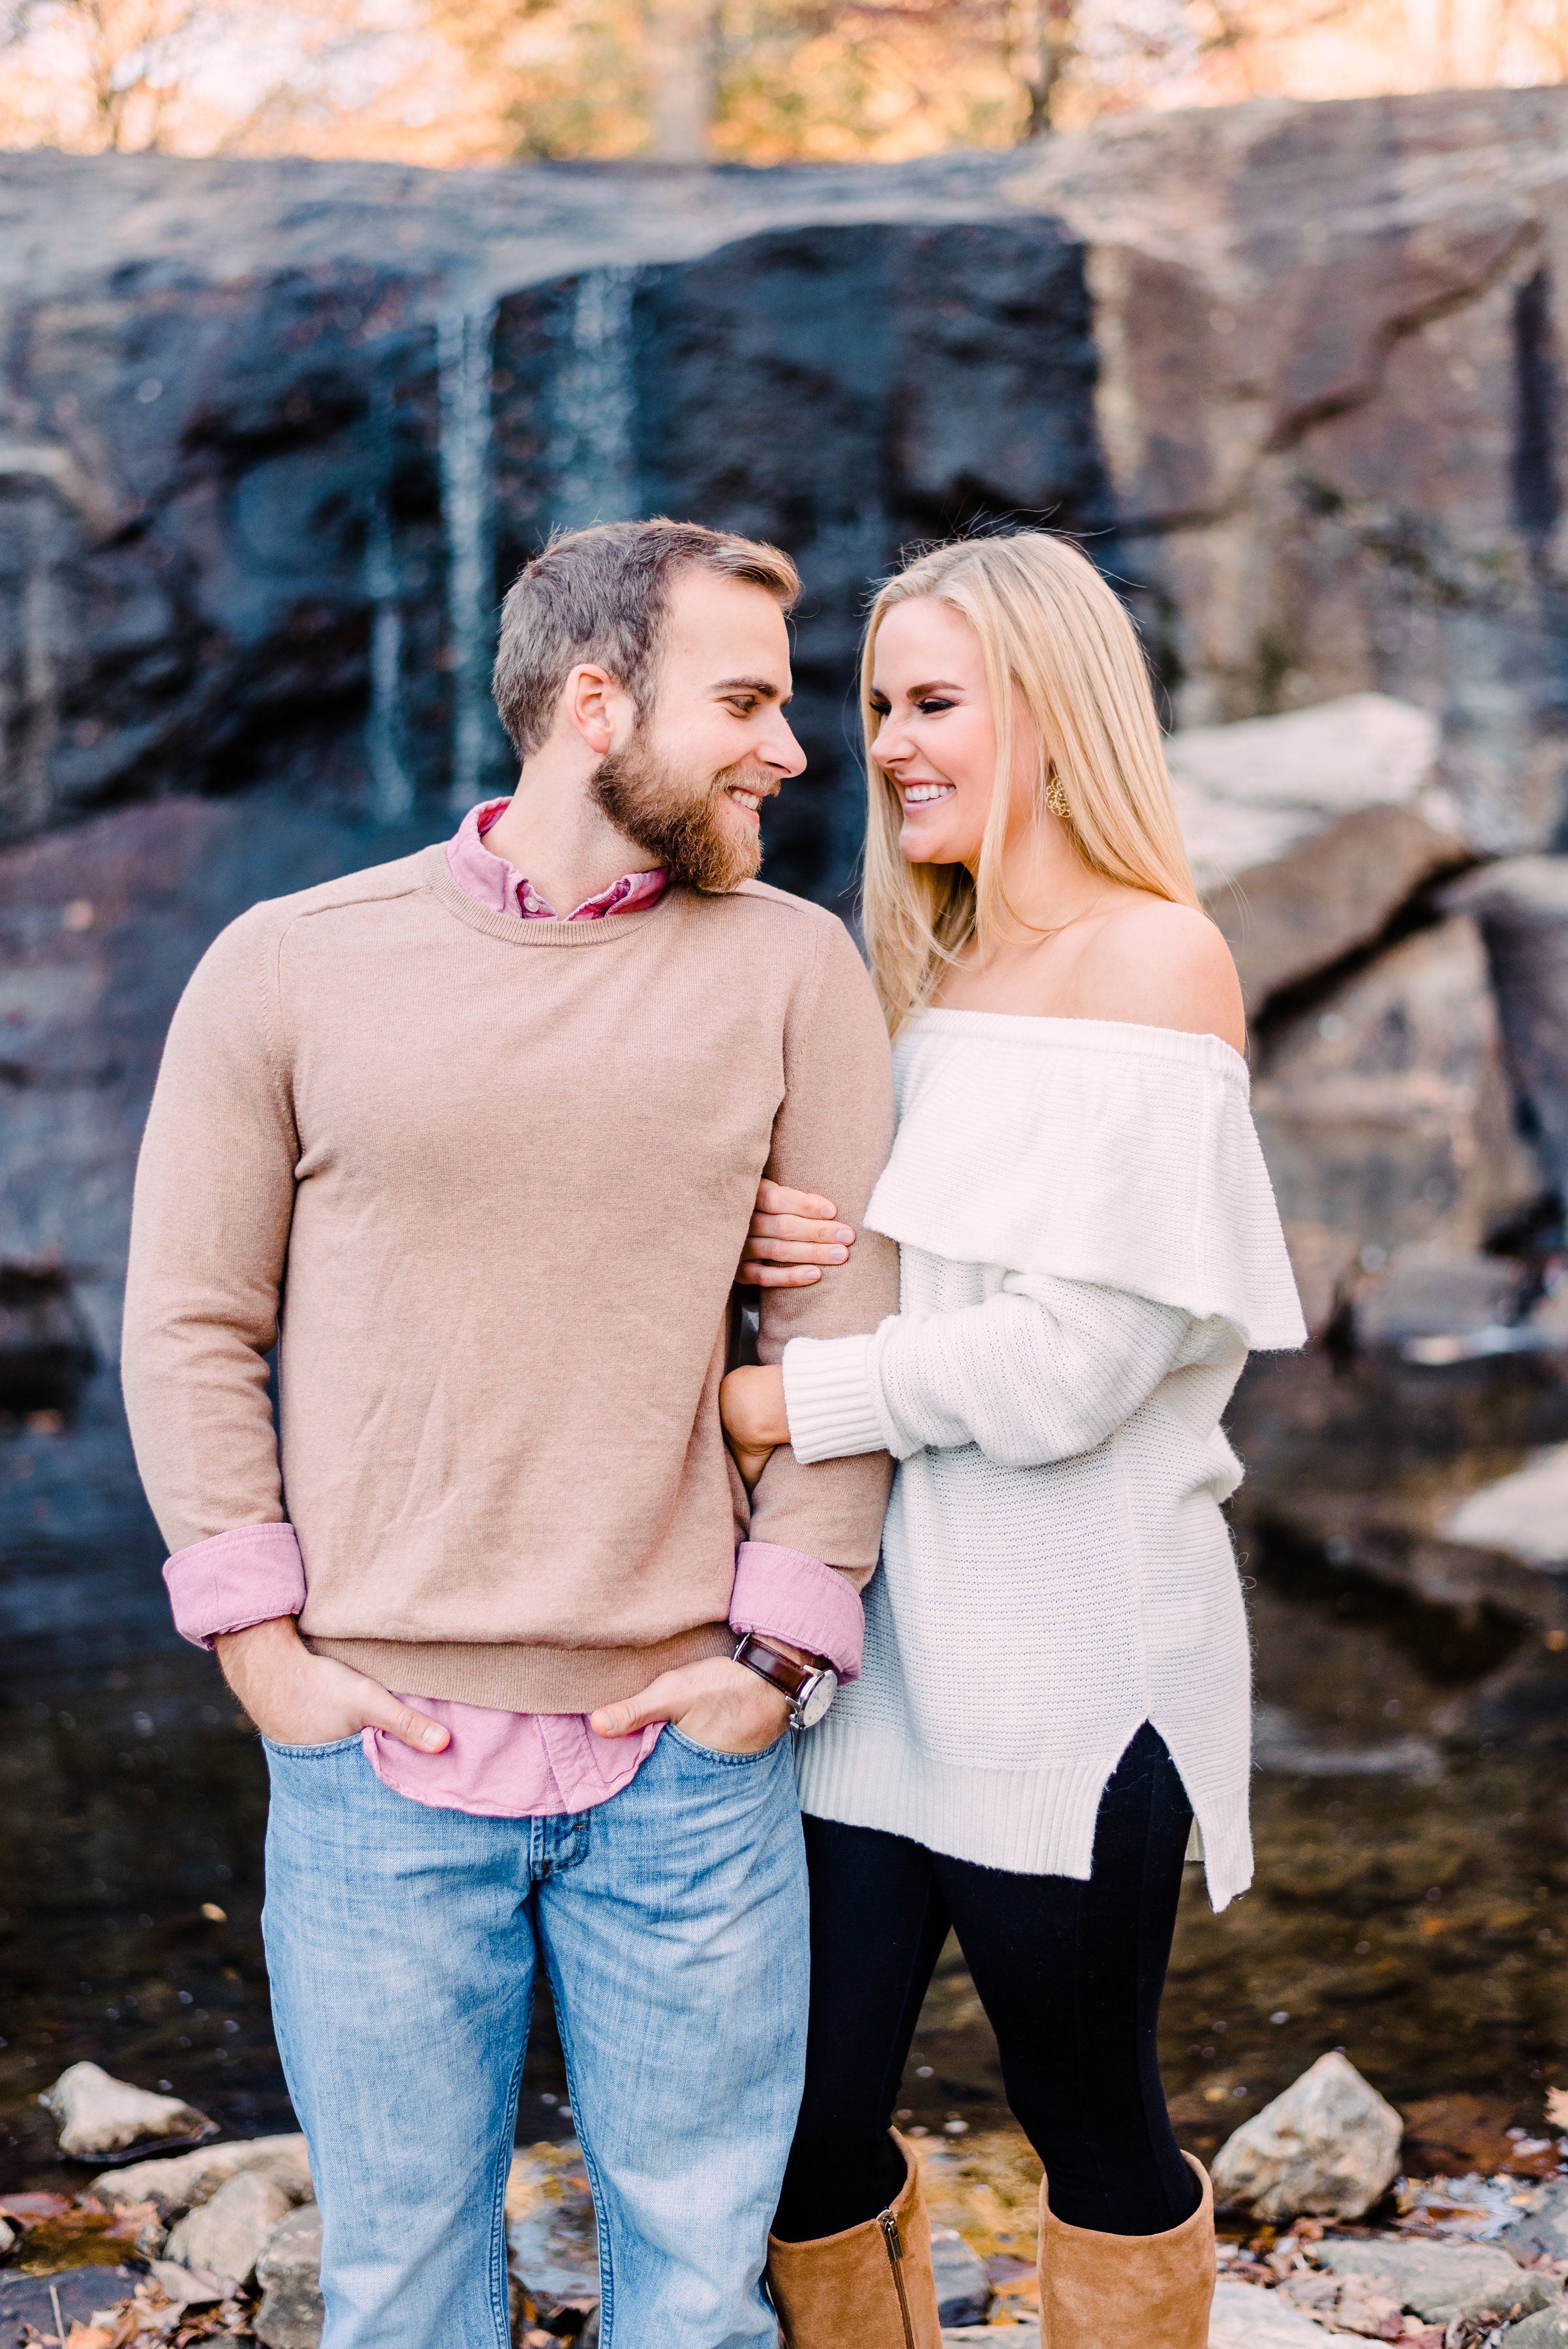 Kirby_Mobley_engaged-53.jpg